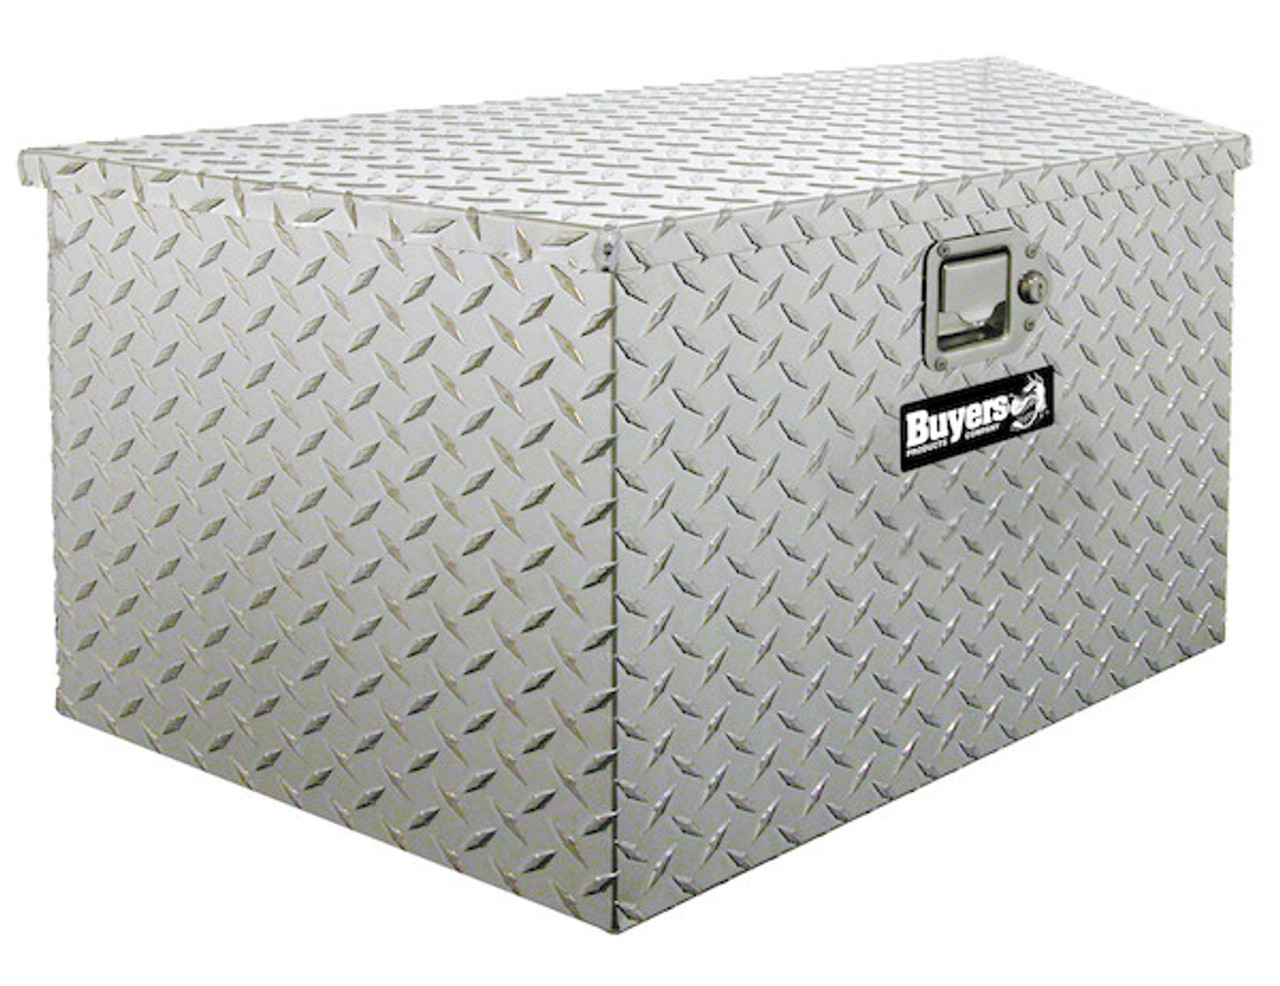 """1701380 BUYERS PRODUCTS DIAMOND TREAD ALUMINUM TRAILER TONGUE TRUCK TOOLBOX 15""""HX14.5""""DX34""""W PICTURE # 1"""